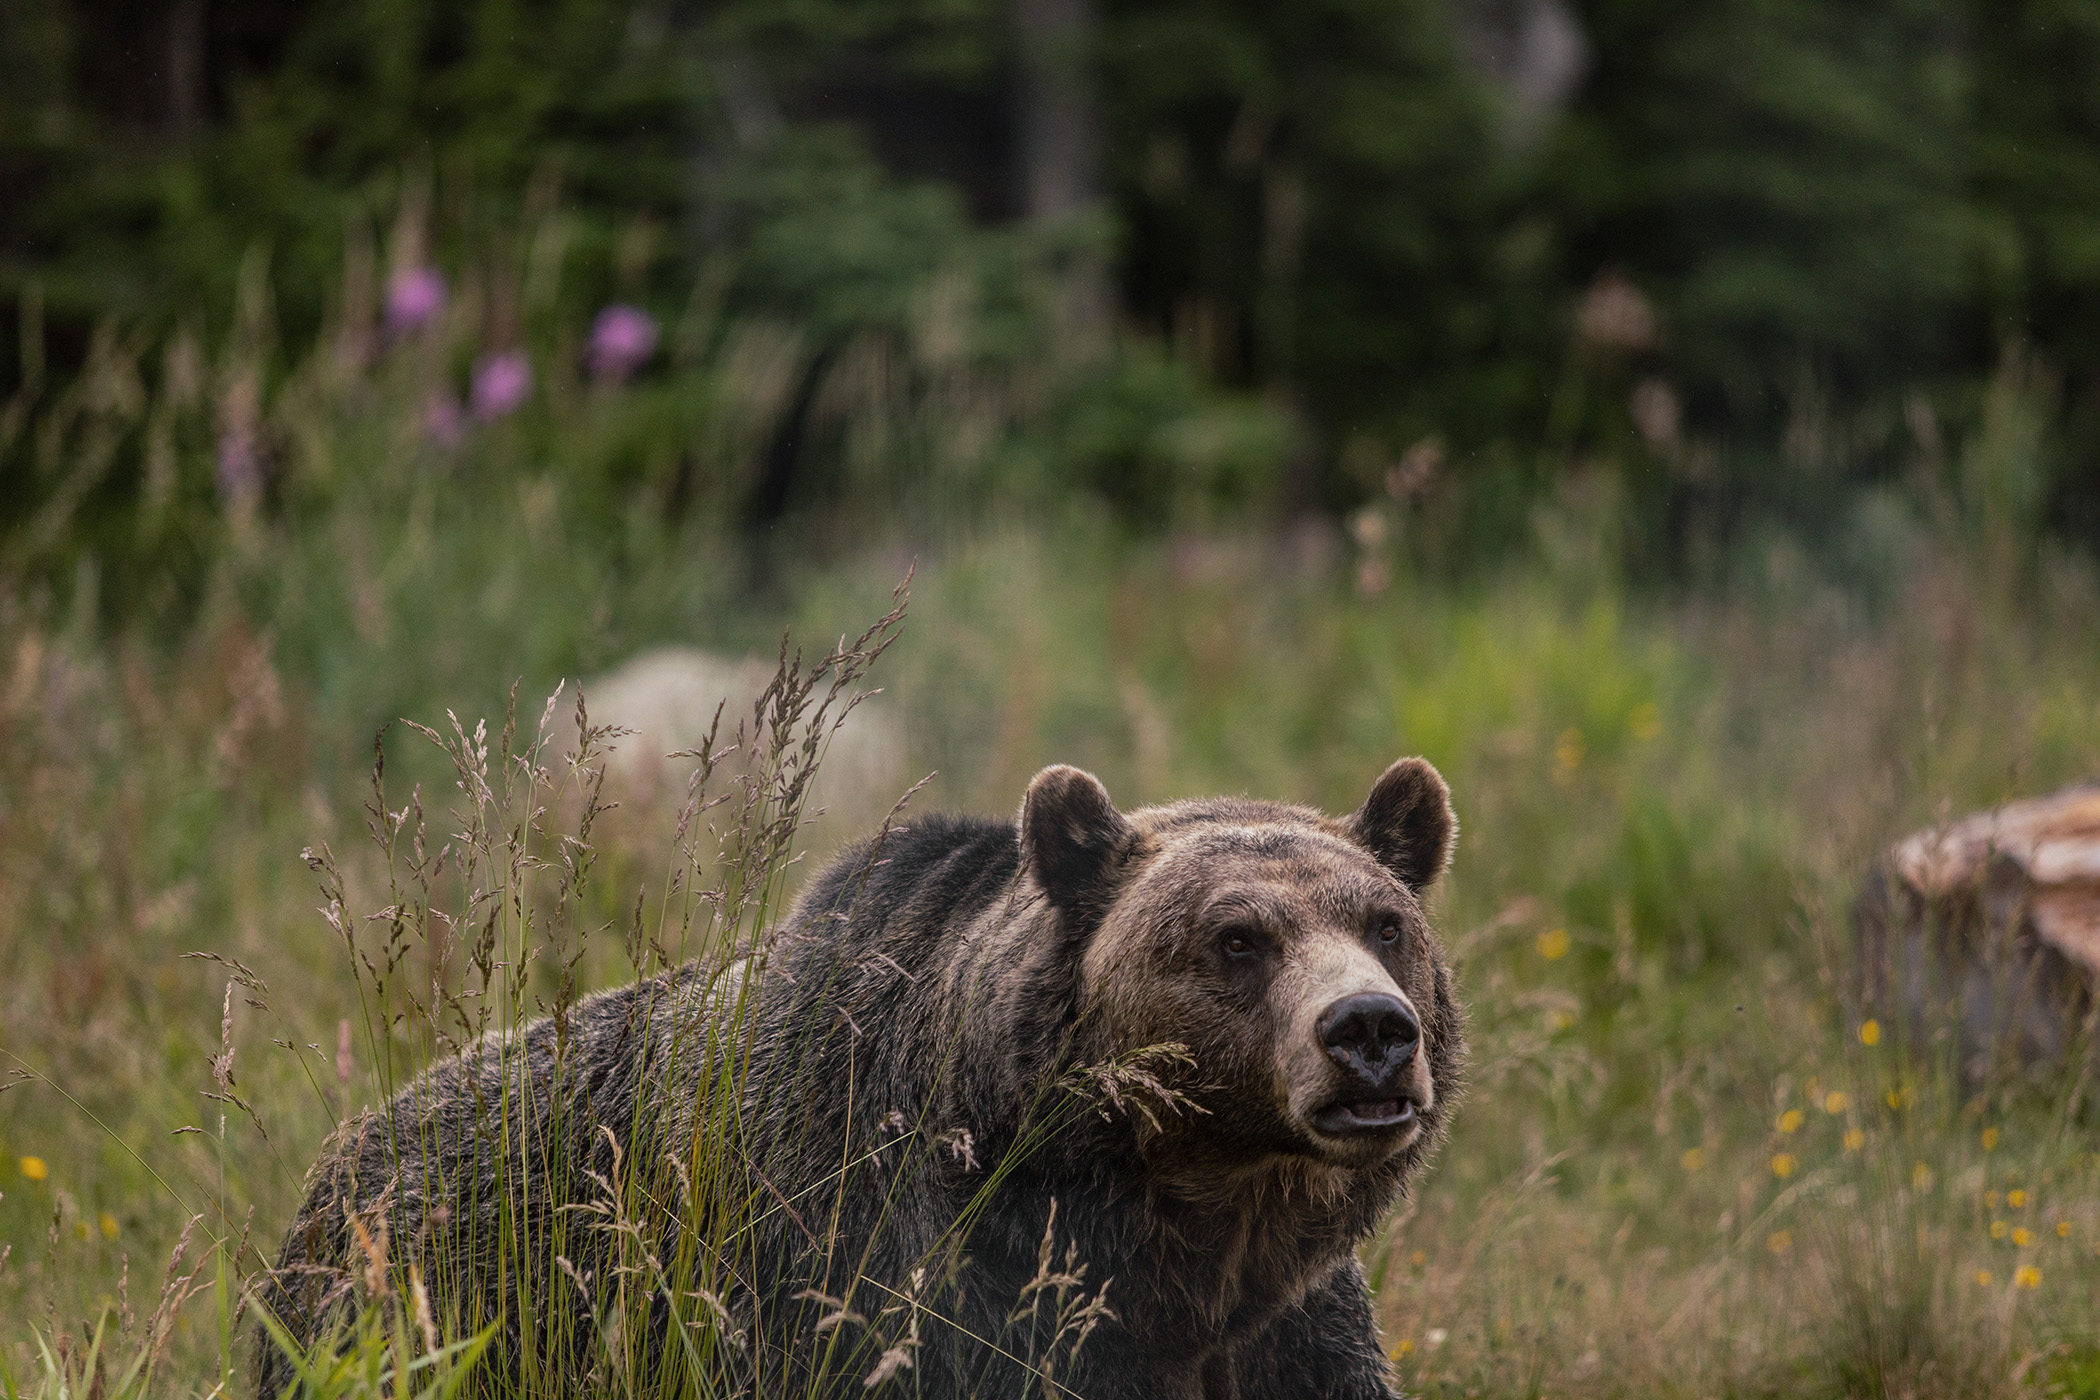 Mike Kane | Grizzly bear in British Columbia, Canada | Seattle documentary, editorial, and commercial photography